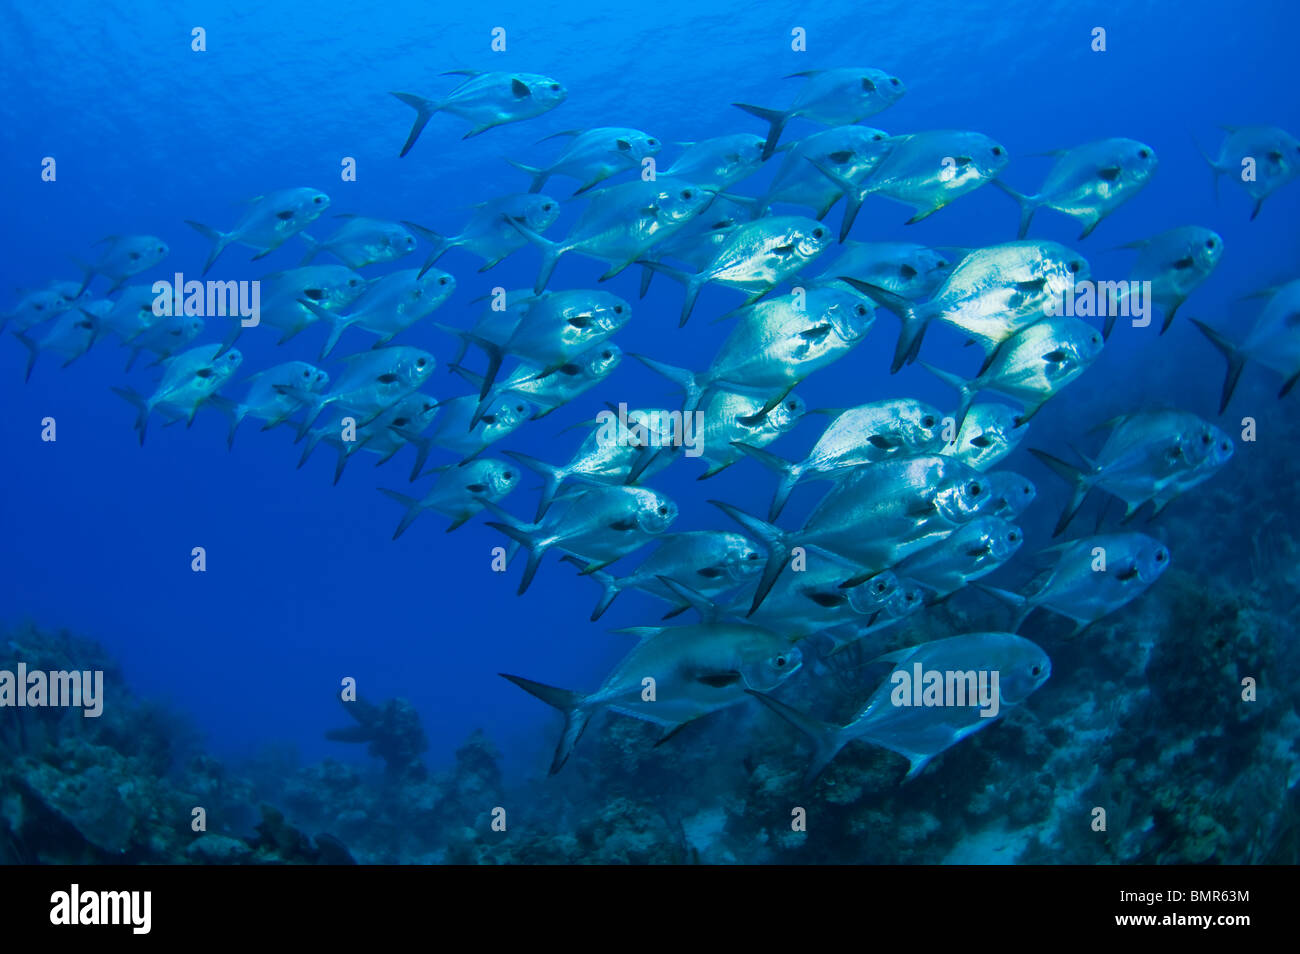 School of permit (Trachinotus falcatus) photographed in Southwest Caye, Belize, Central America. - Stock Image